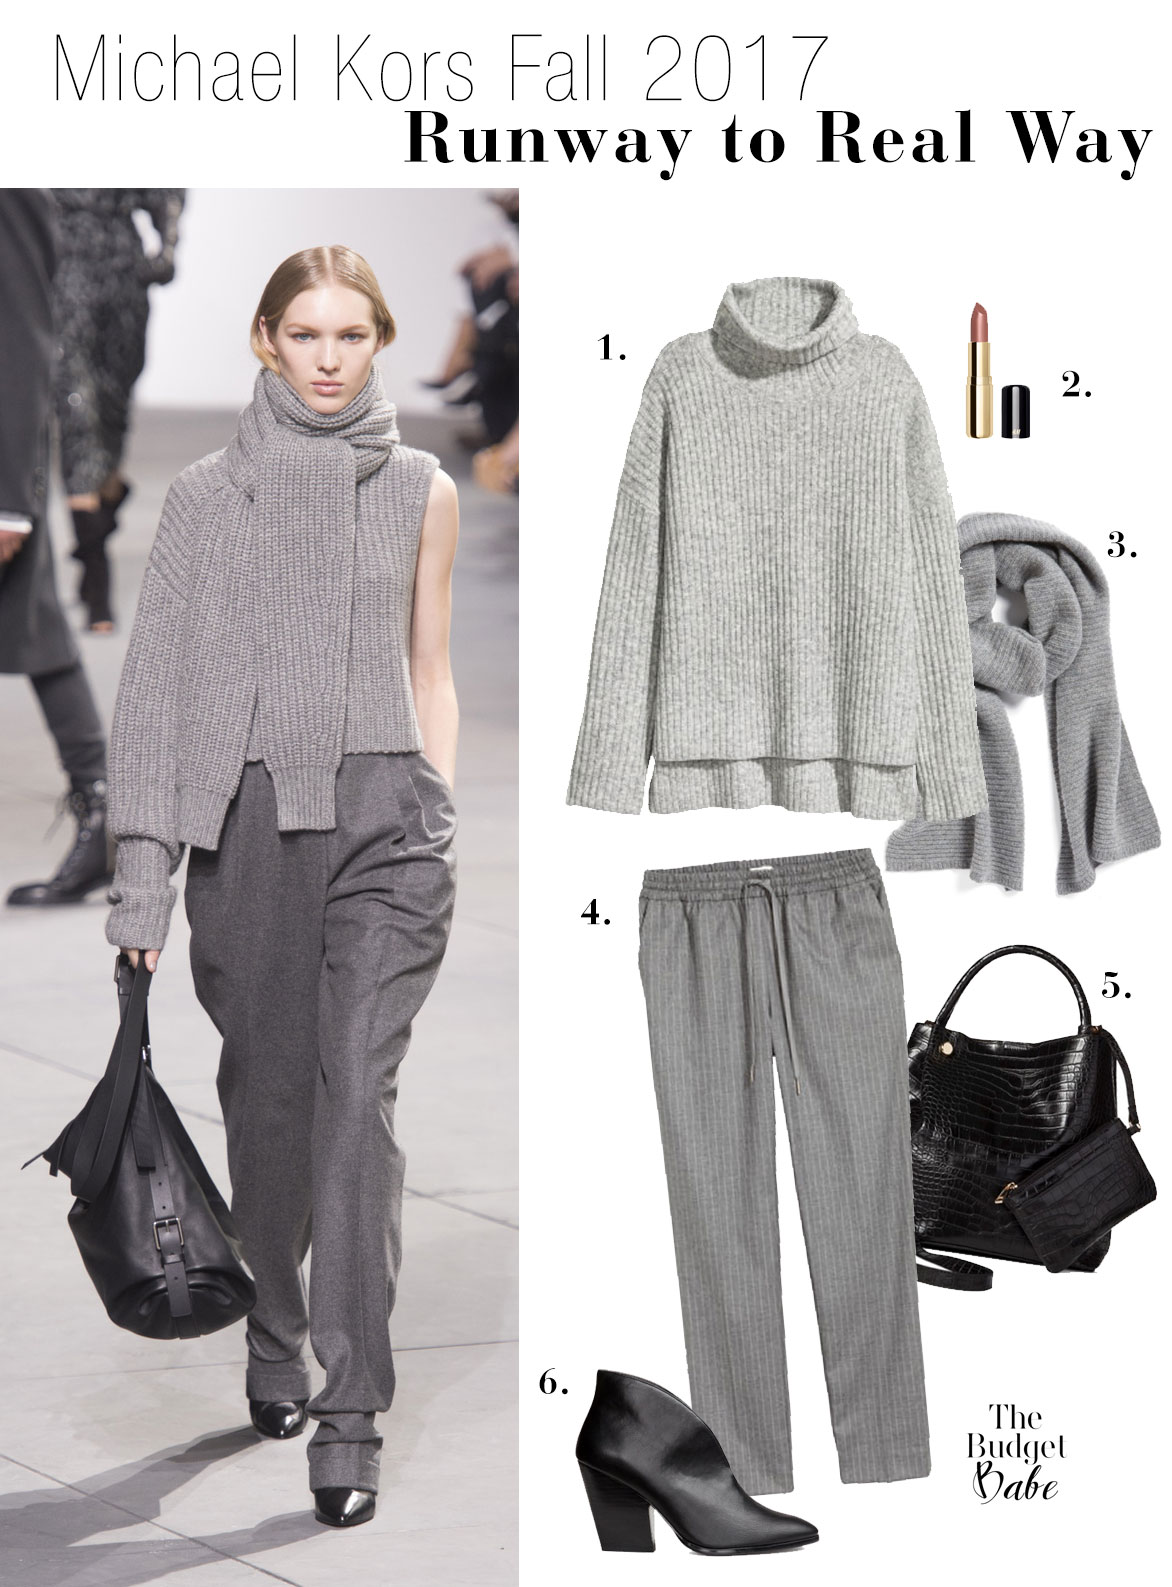 Take style cues from the Michael Kors Fall 2017 runway show in this monochromatic gray power look.